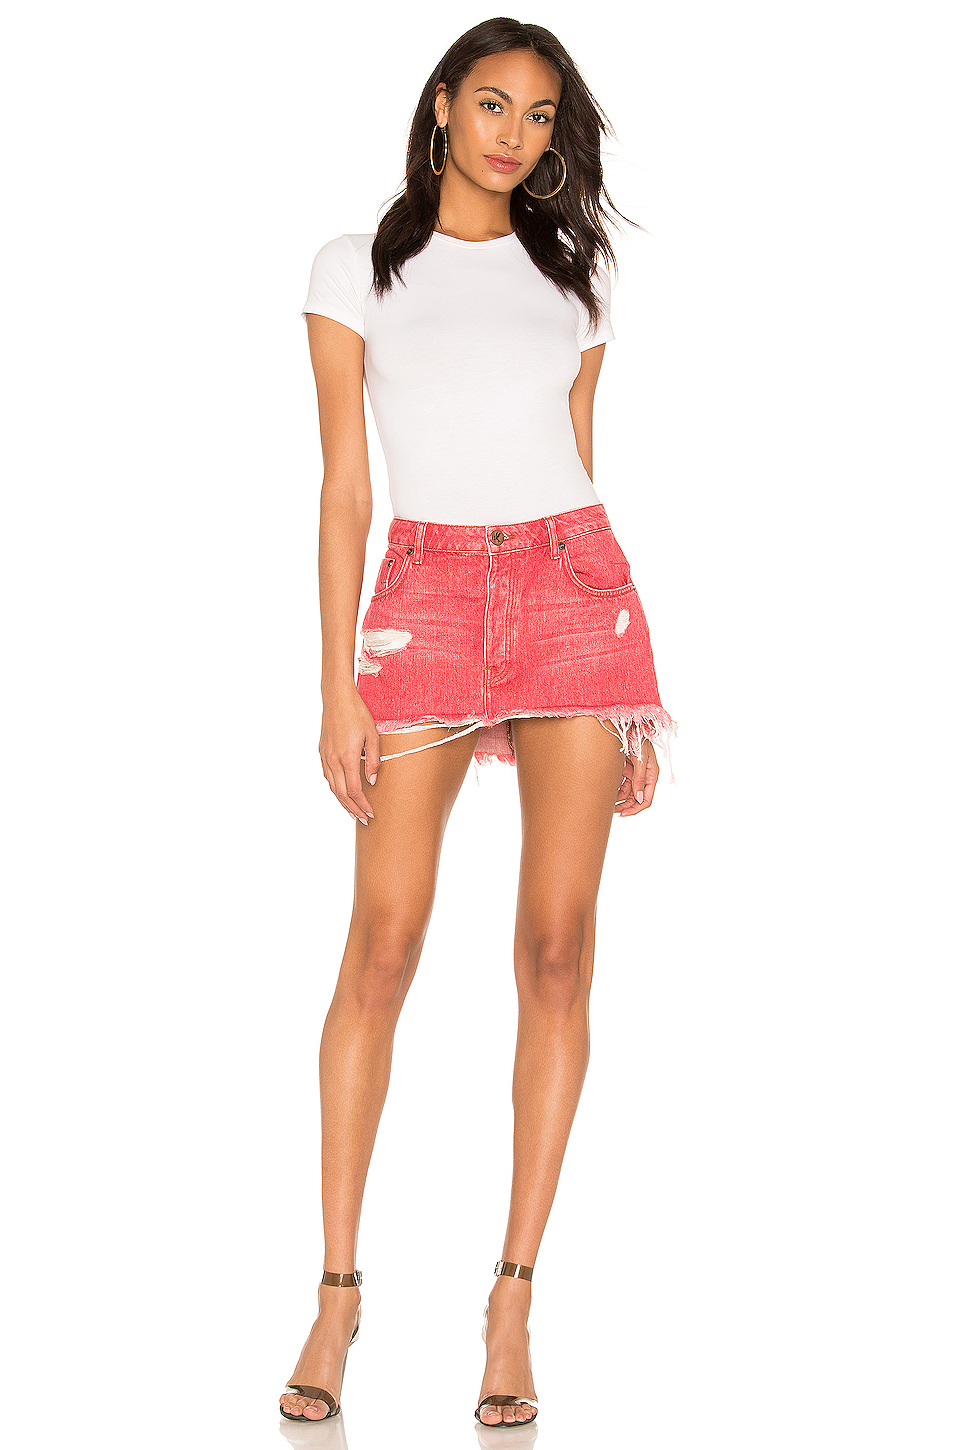 One Teaspoon Junkyard Relaxed Mini Skirt